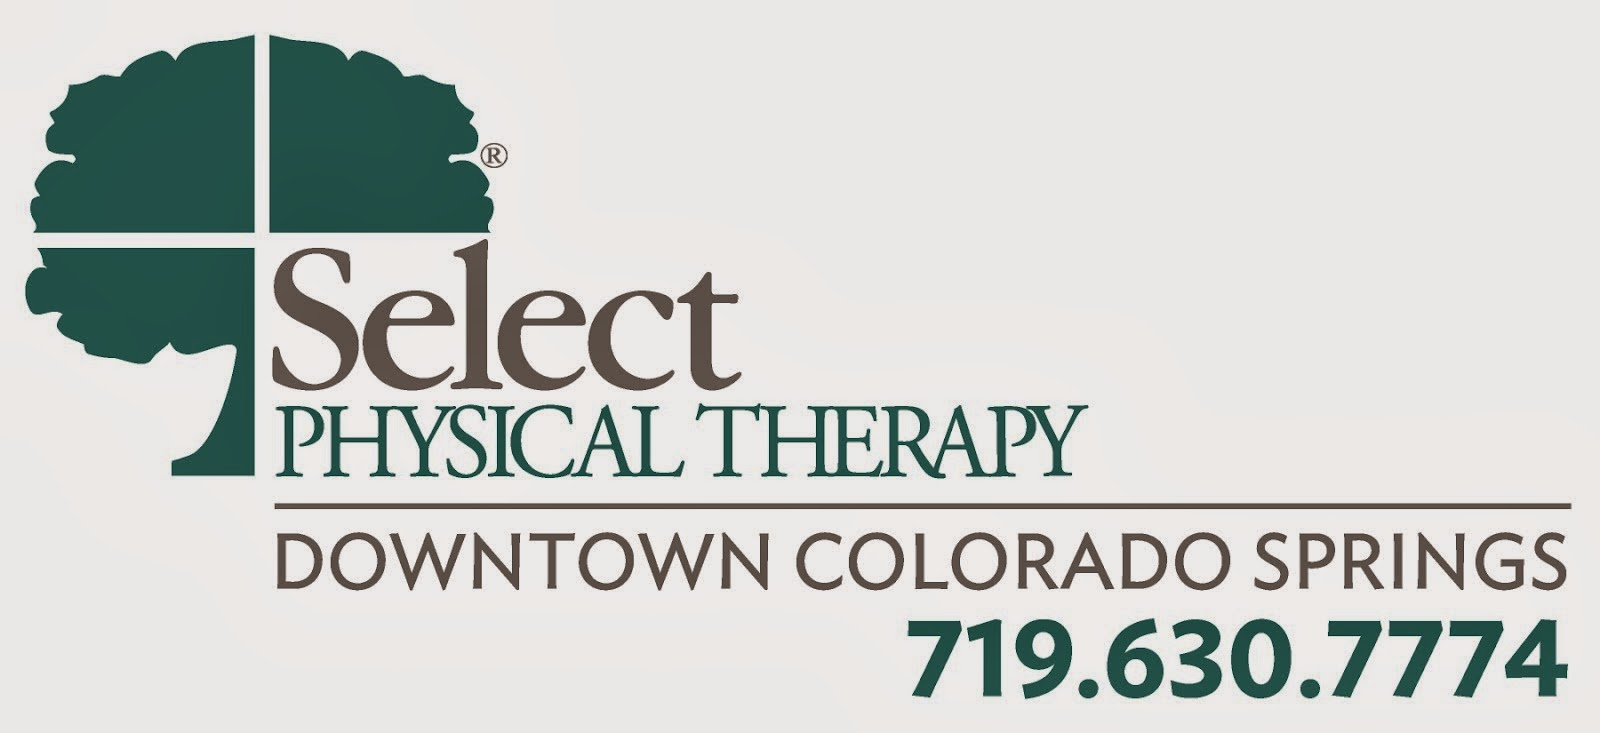 Select PT is located at 15 S Weber St in Downtown Colorado Springs